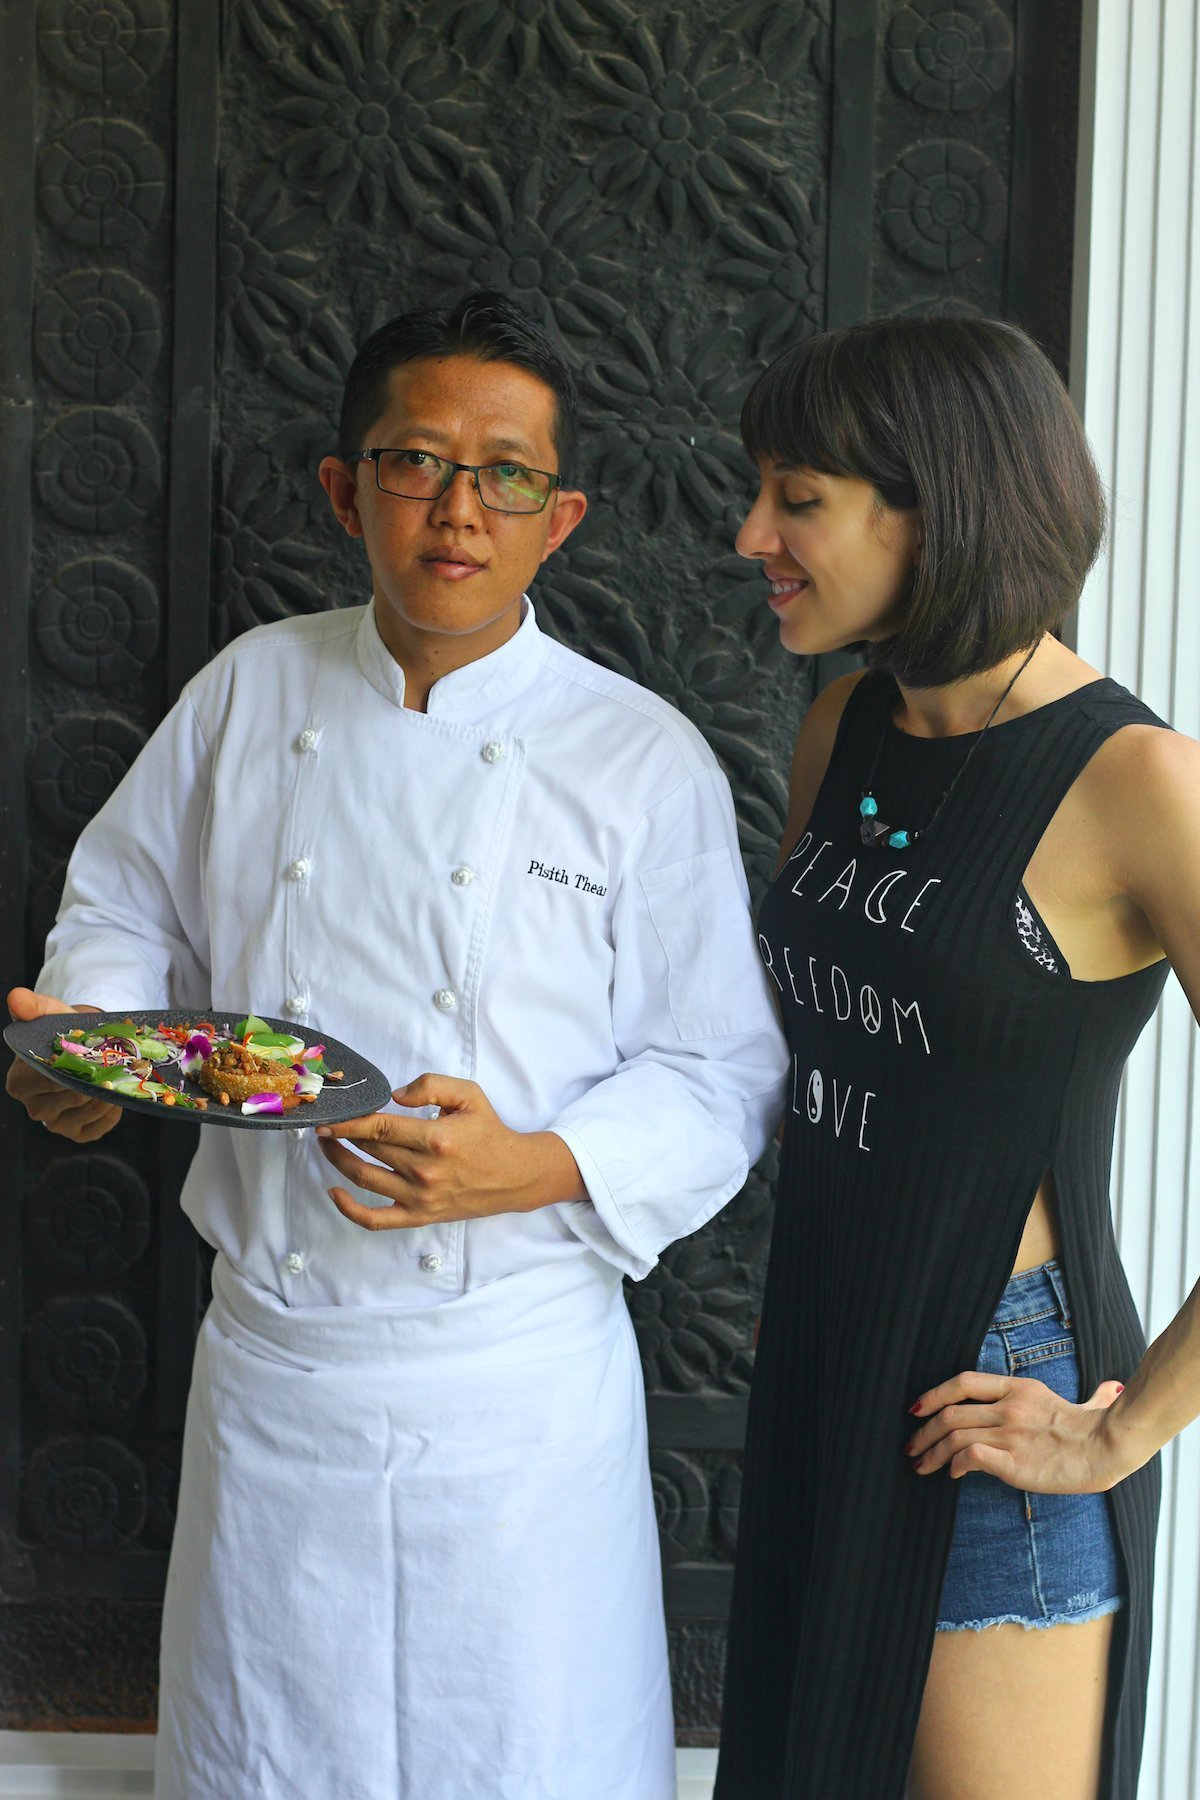 Special Diet Consulting with the with the Executive Chef of Park Hyatt Siem Reap